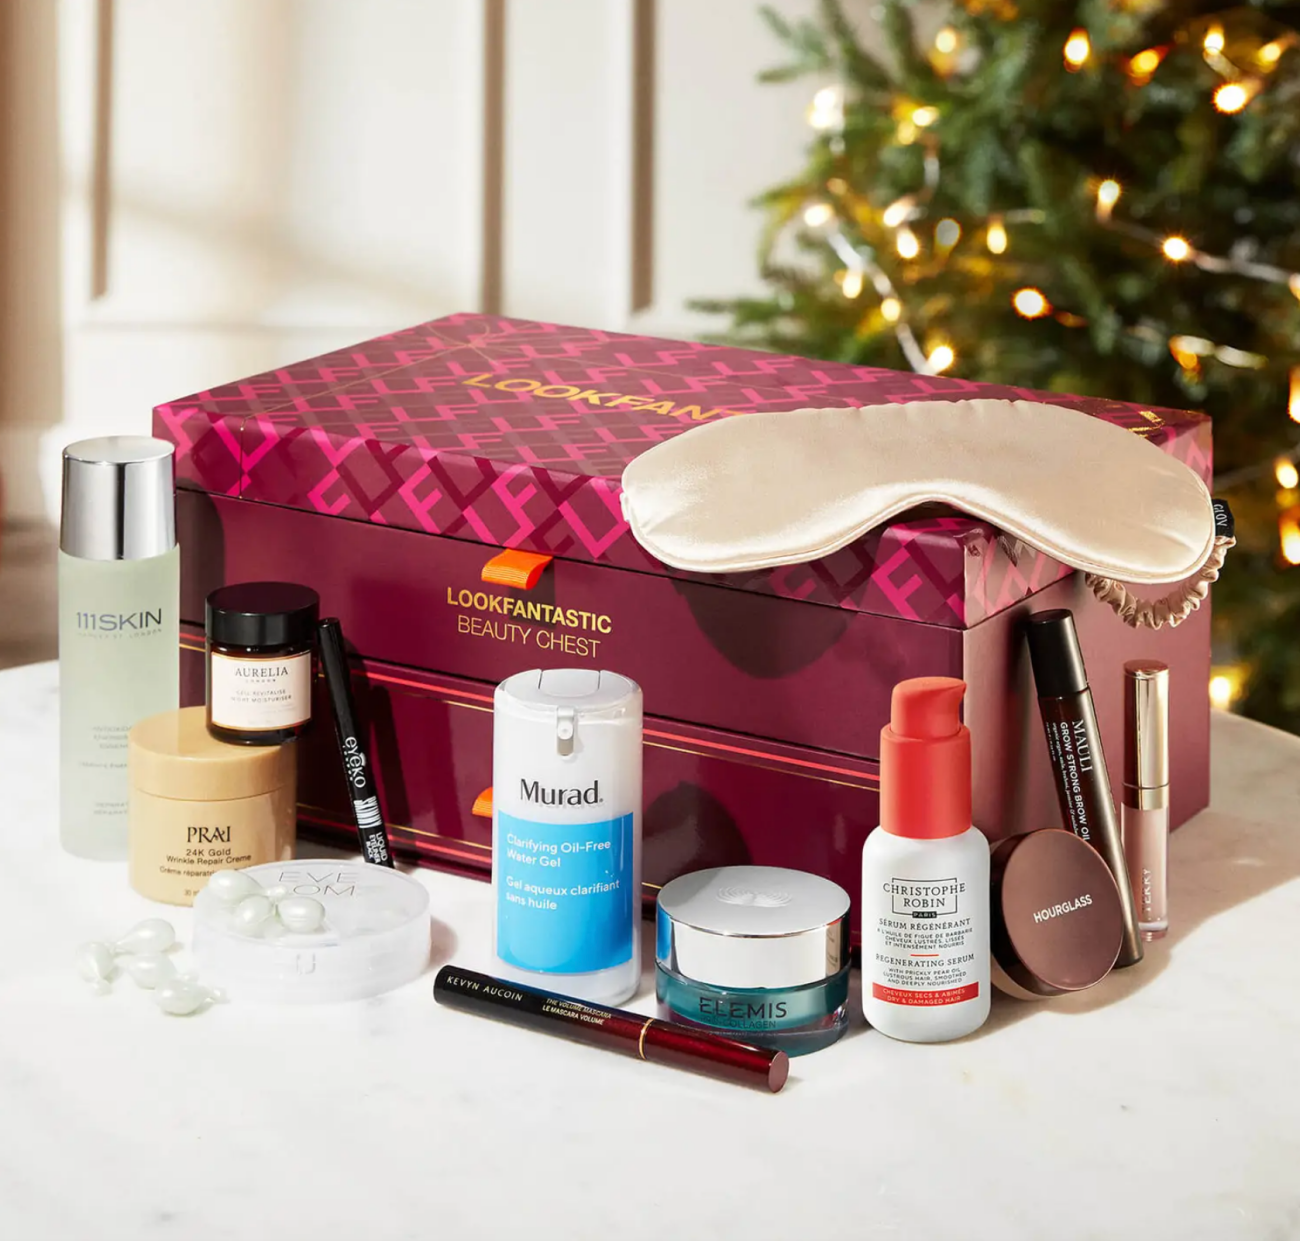 LookFantastic Beauty Chest